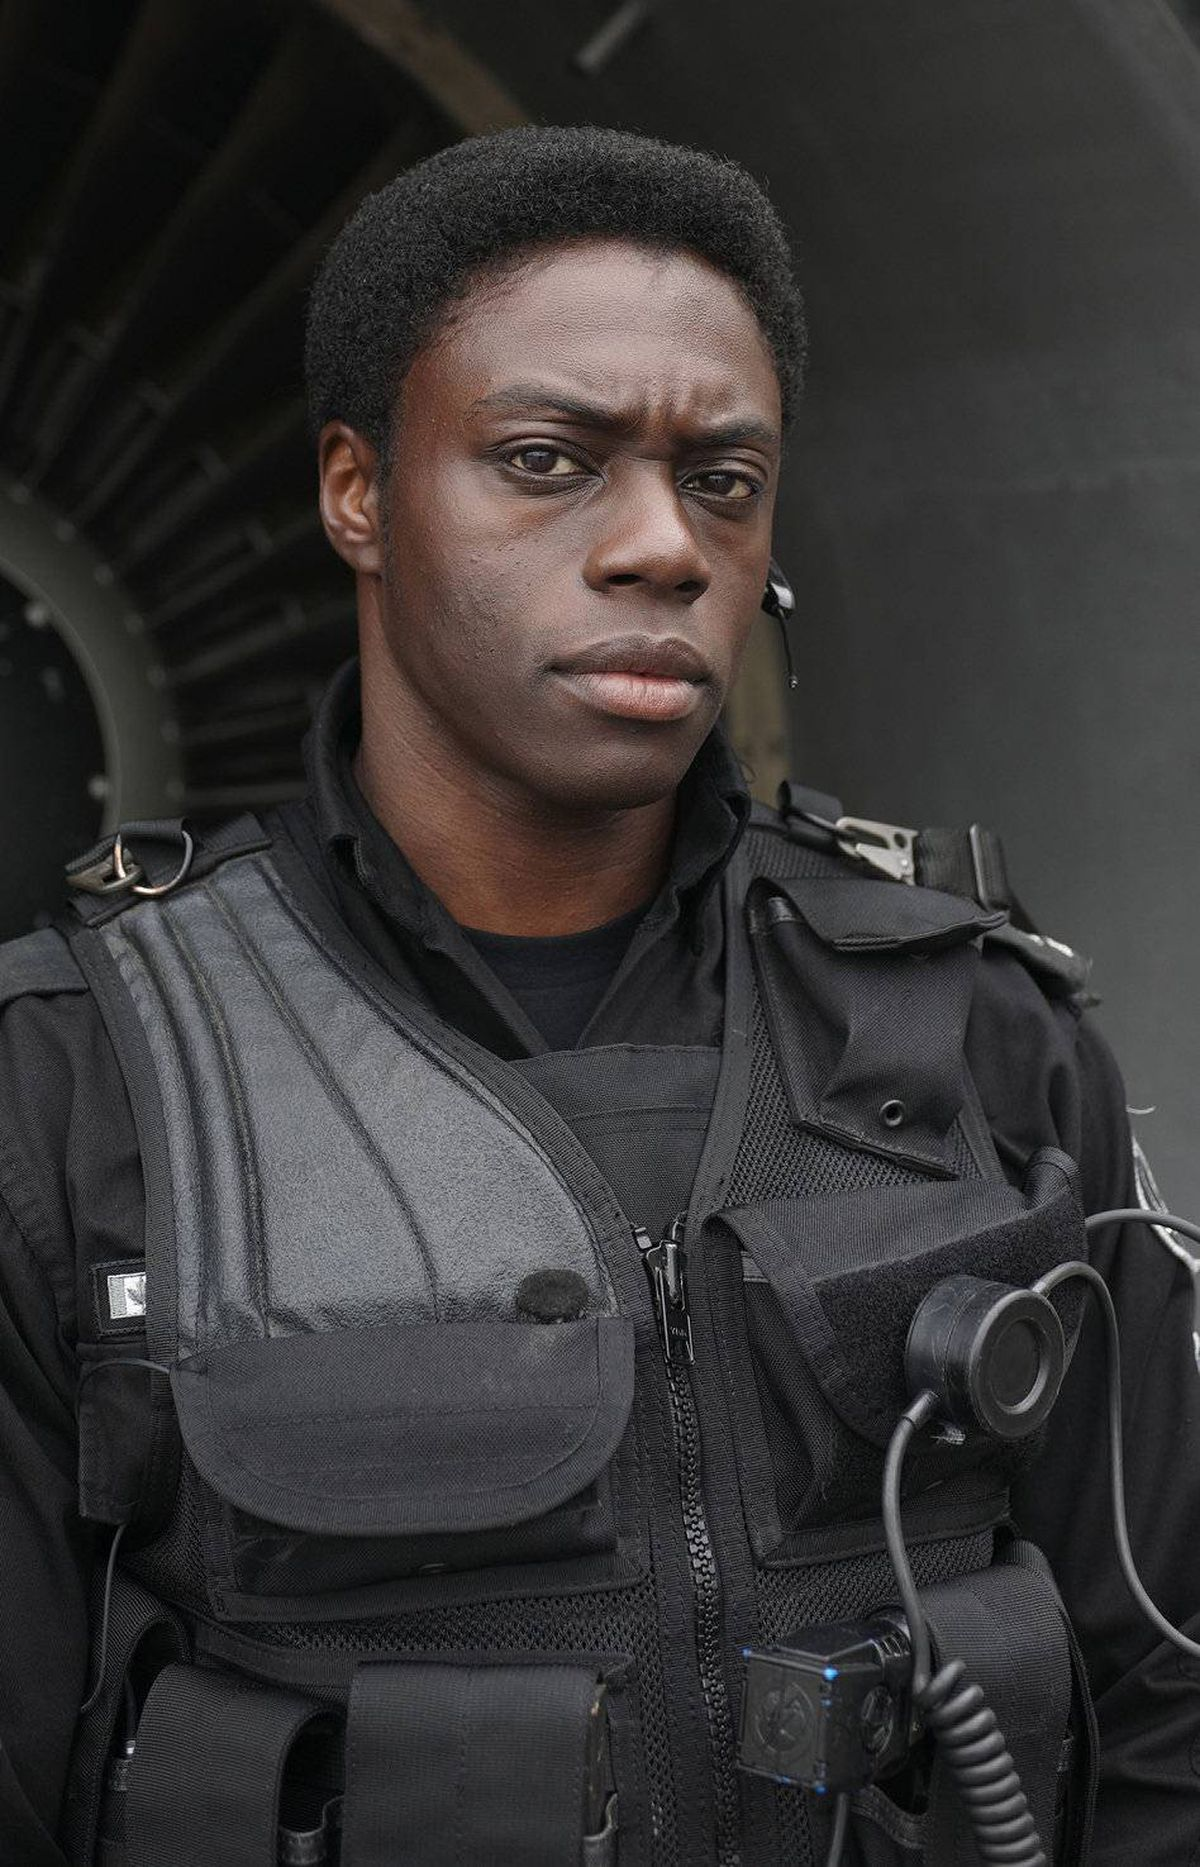 """DRAMA Flashpoint CTV, CBS, 8 p.m. Meet the new cop on the block. Tonight's new episode introduces the new recruit Rafik """"Raf"""" Rousseau, played by Cle Bennett. The new guy receives a baptism by fire as the Strategic Response Unit responds to three calls—involving a wife-wielding mother, a suicidal father and a delusional gunman--on a chaotic Valentine's Day. Welcome to the force, kid."""